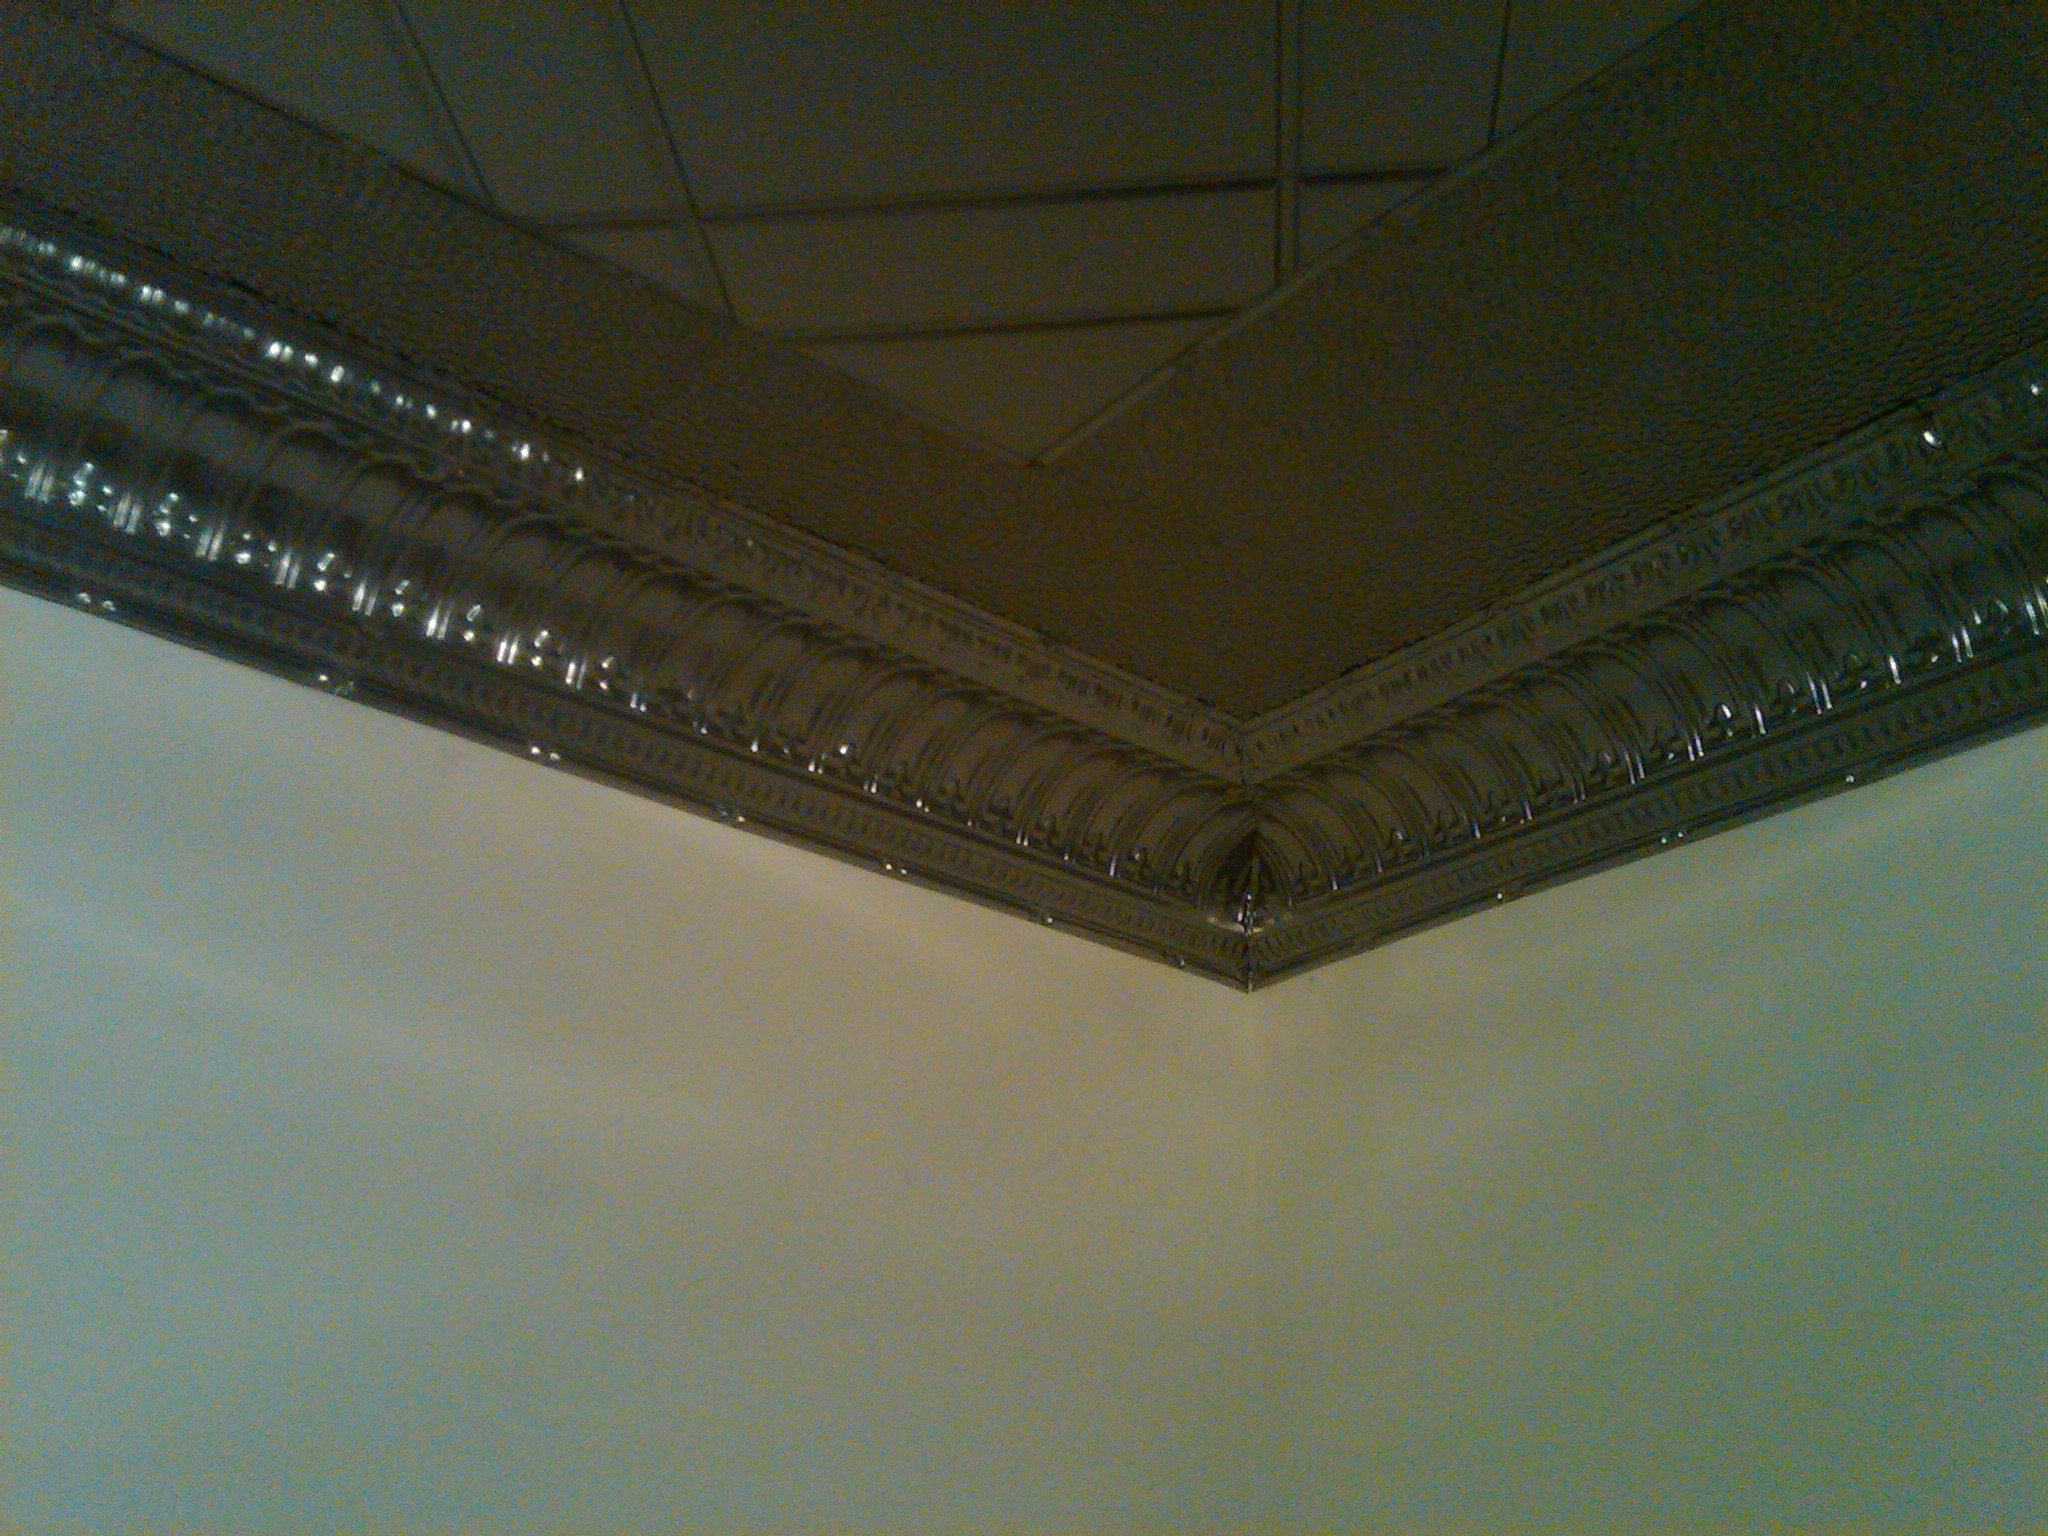 Residential abingdon construction inc tin ceilings installers residential abingdon construction inc tin ceilings installers tin backsplash ceiling installers dailygadgetfo Choice Image